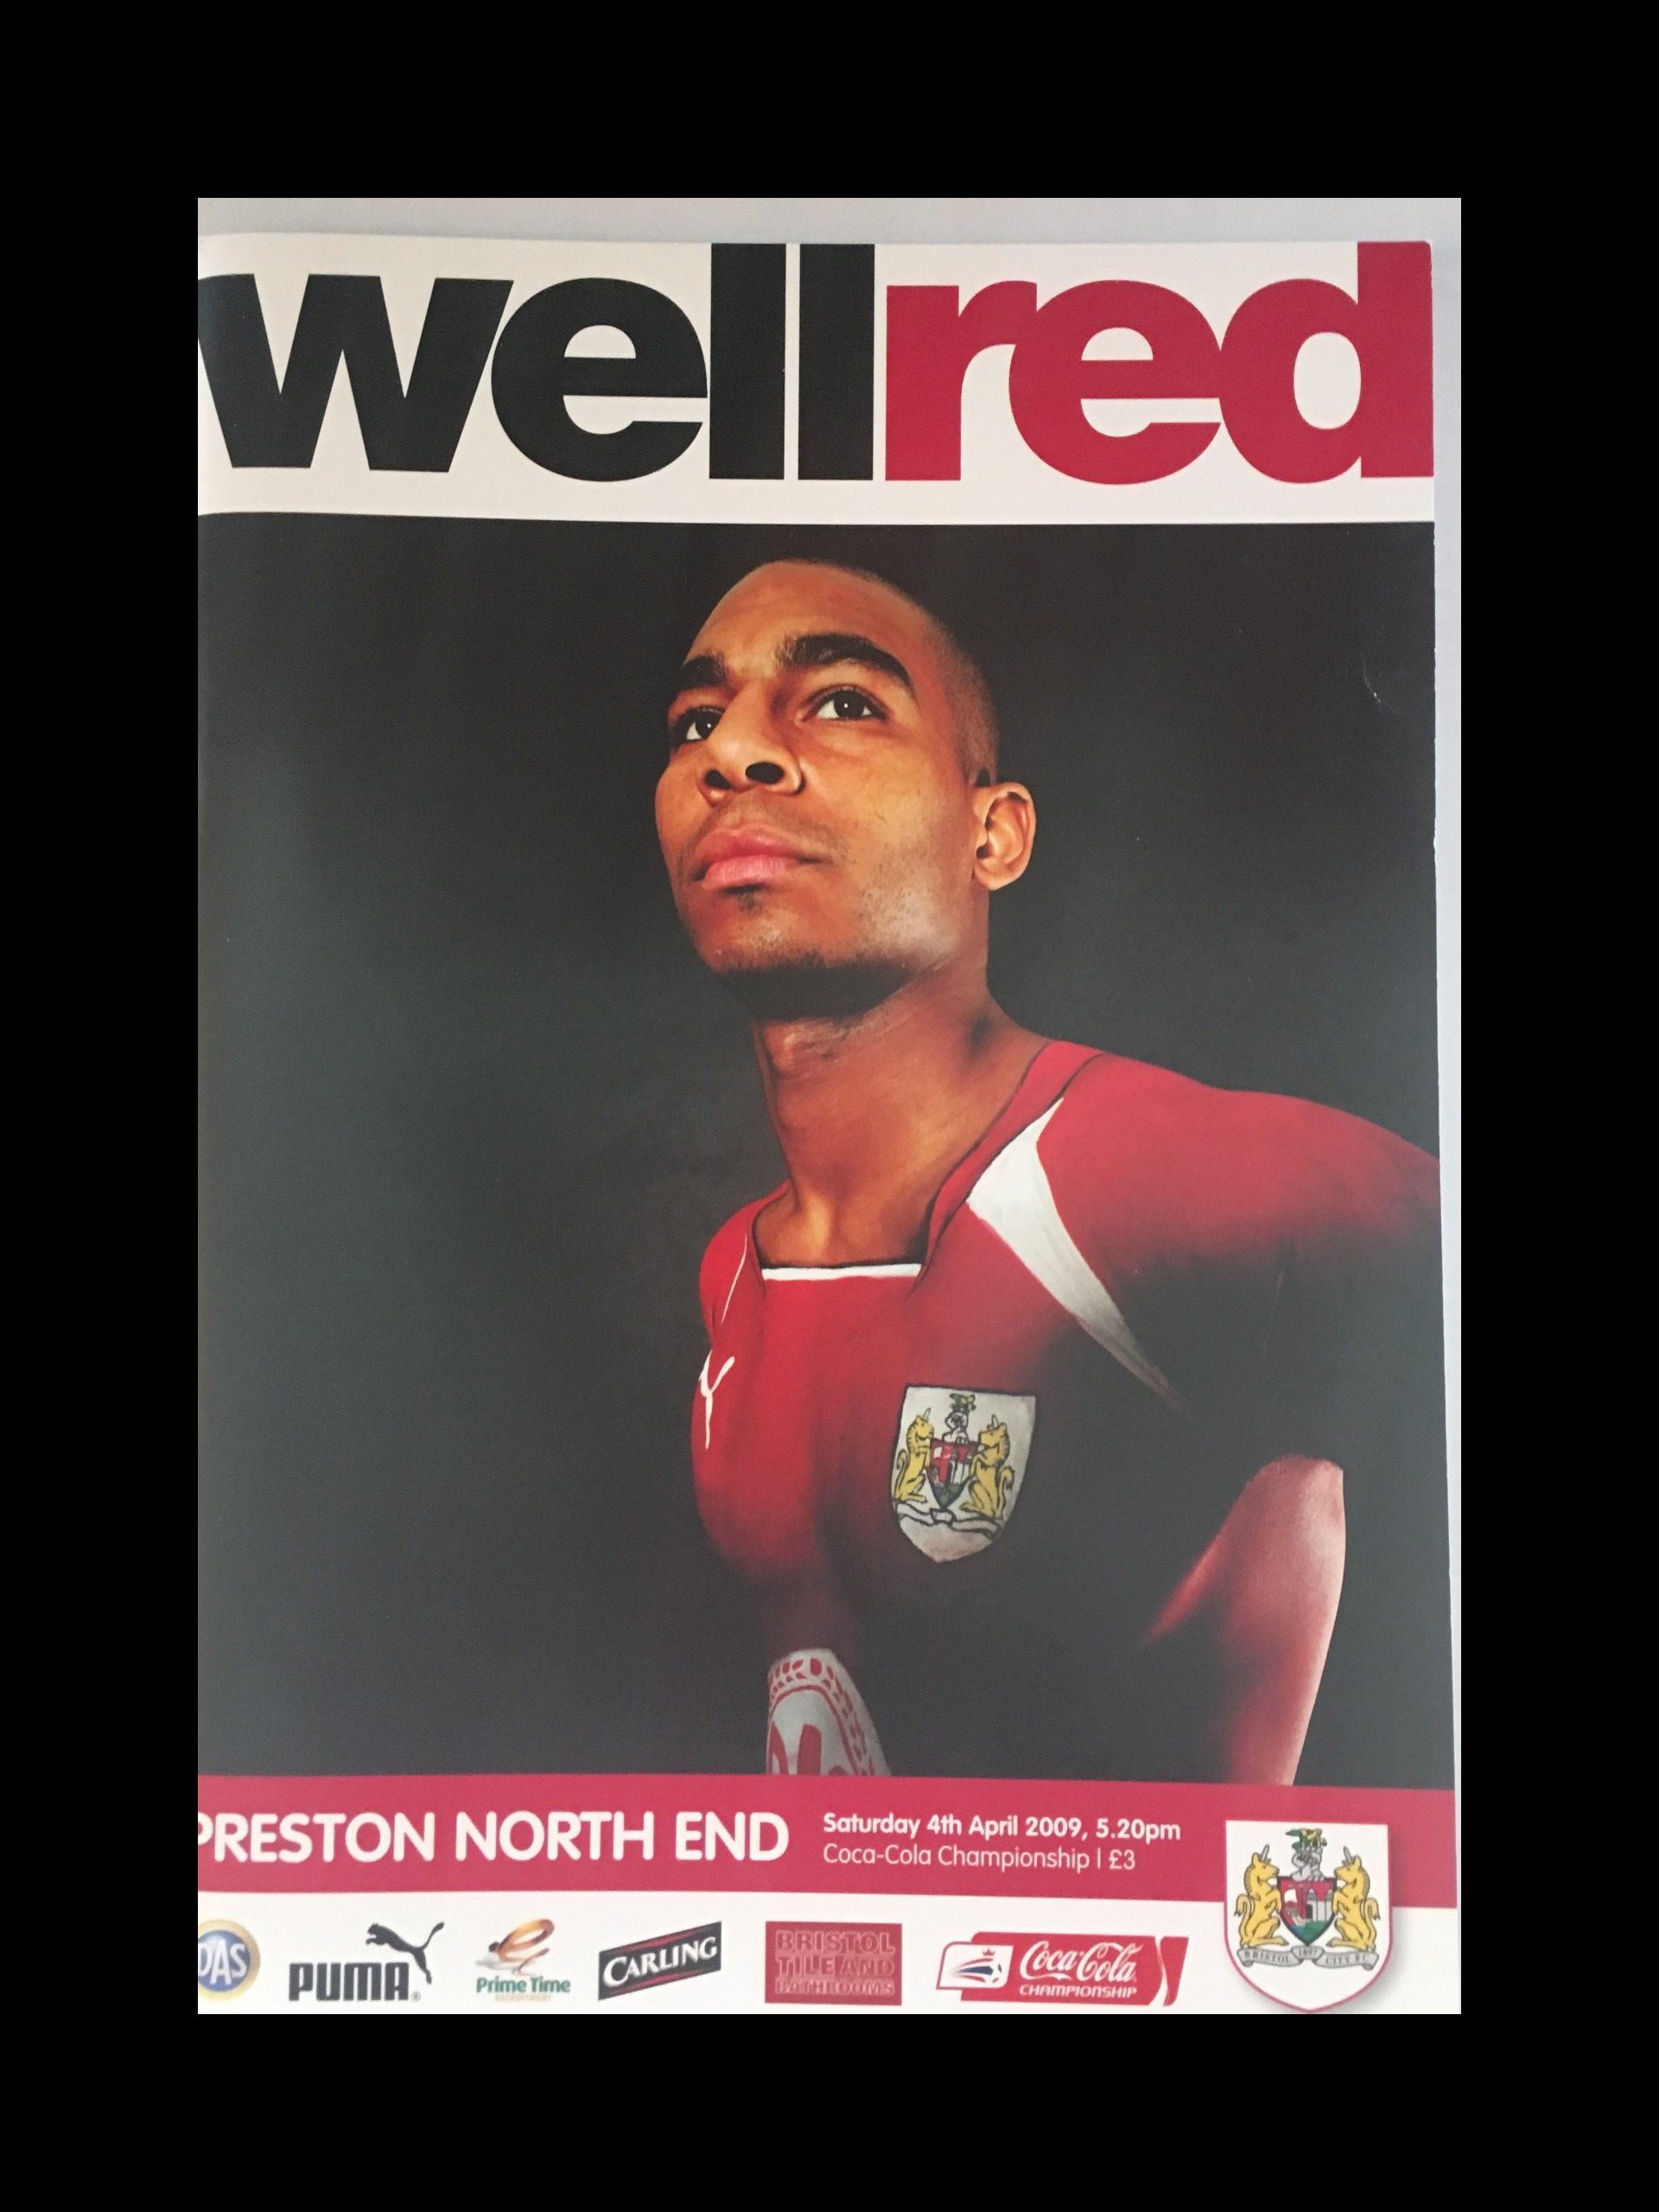 Bristol City v Preston North End 04-04-2009 Programme